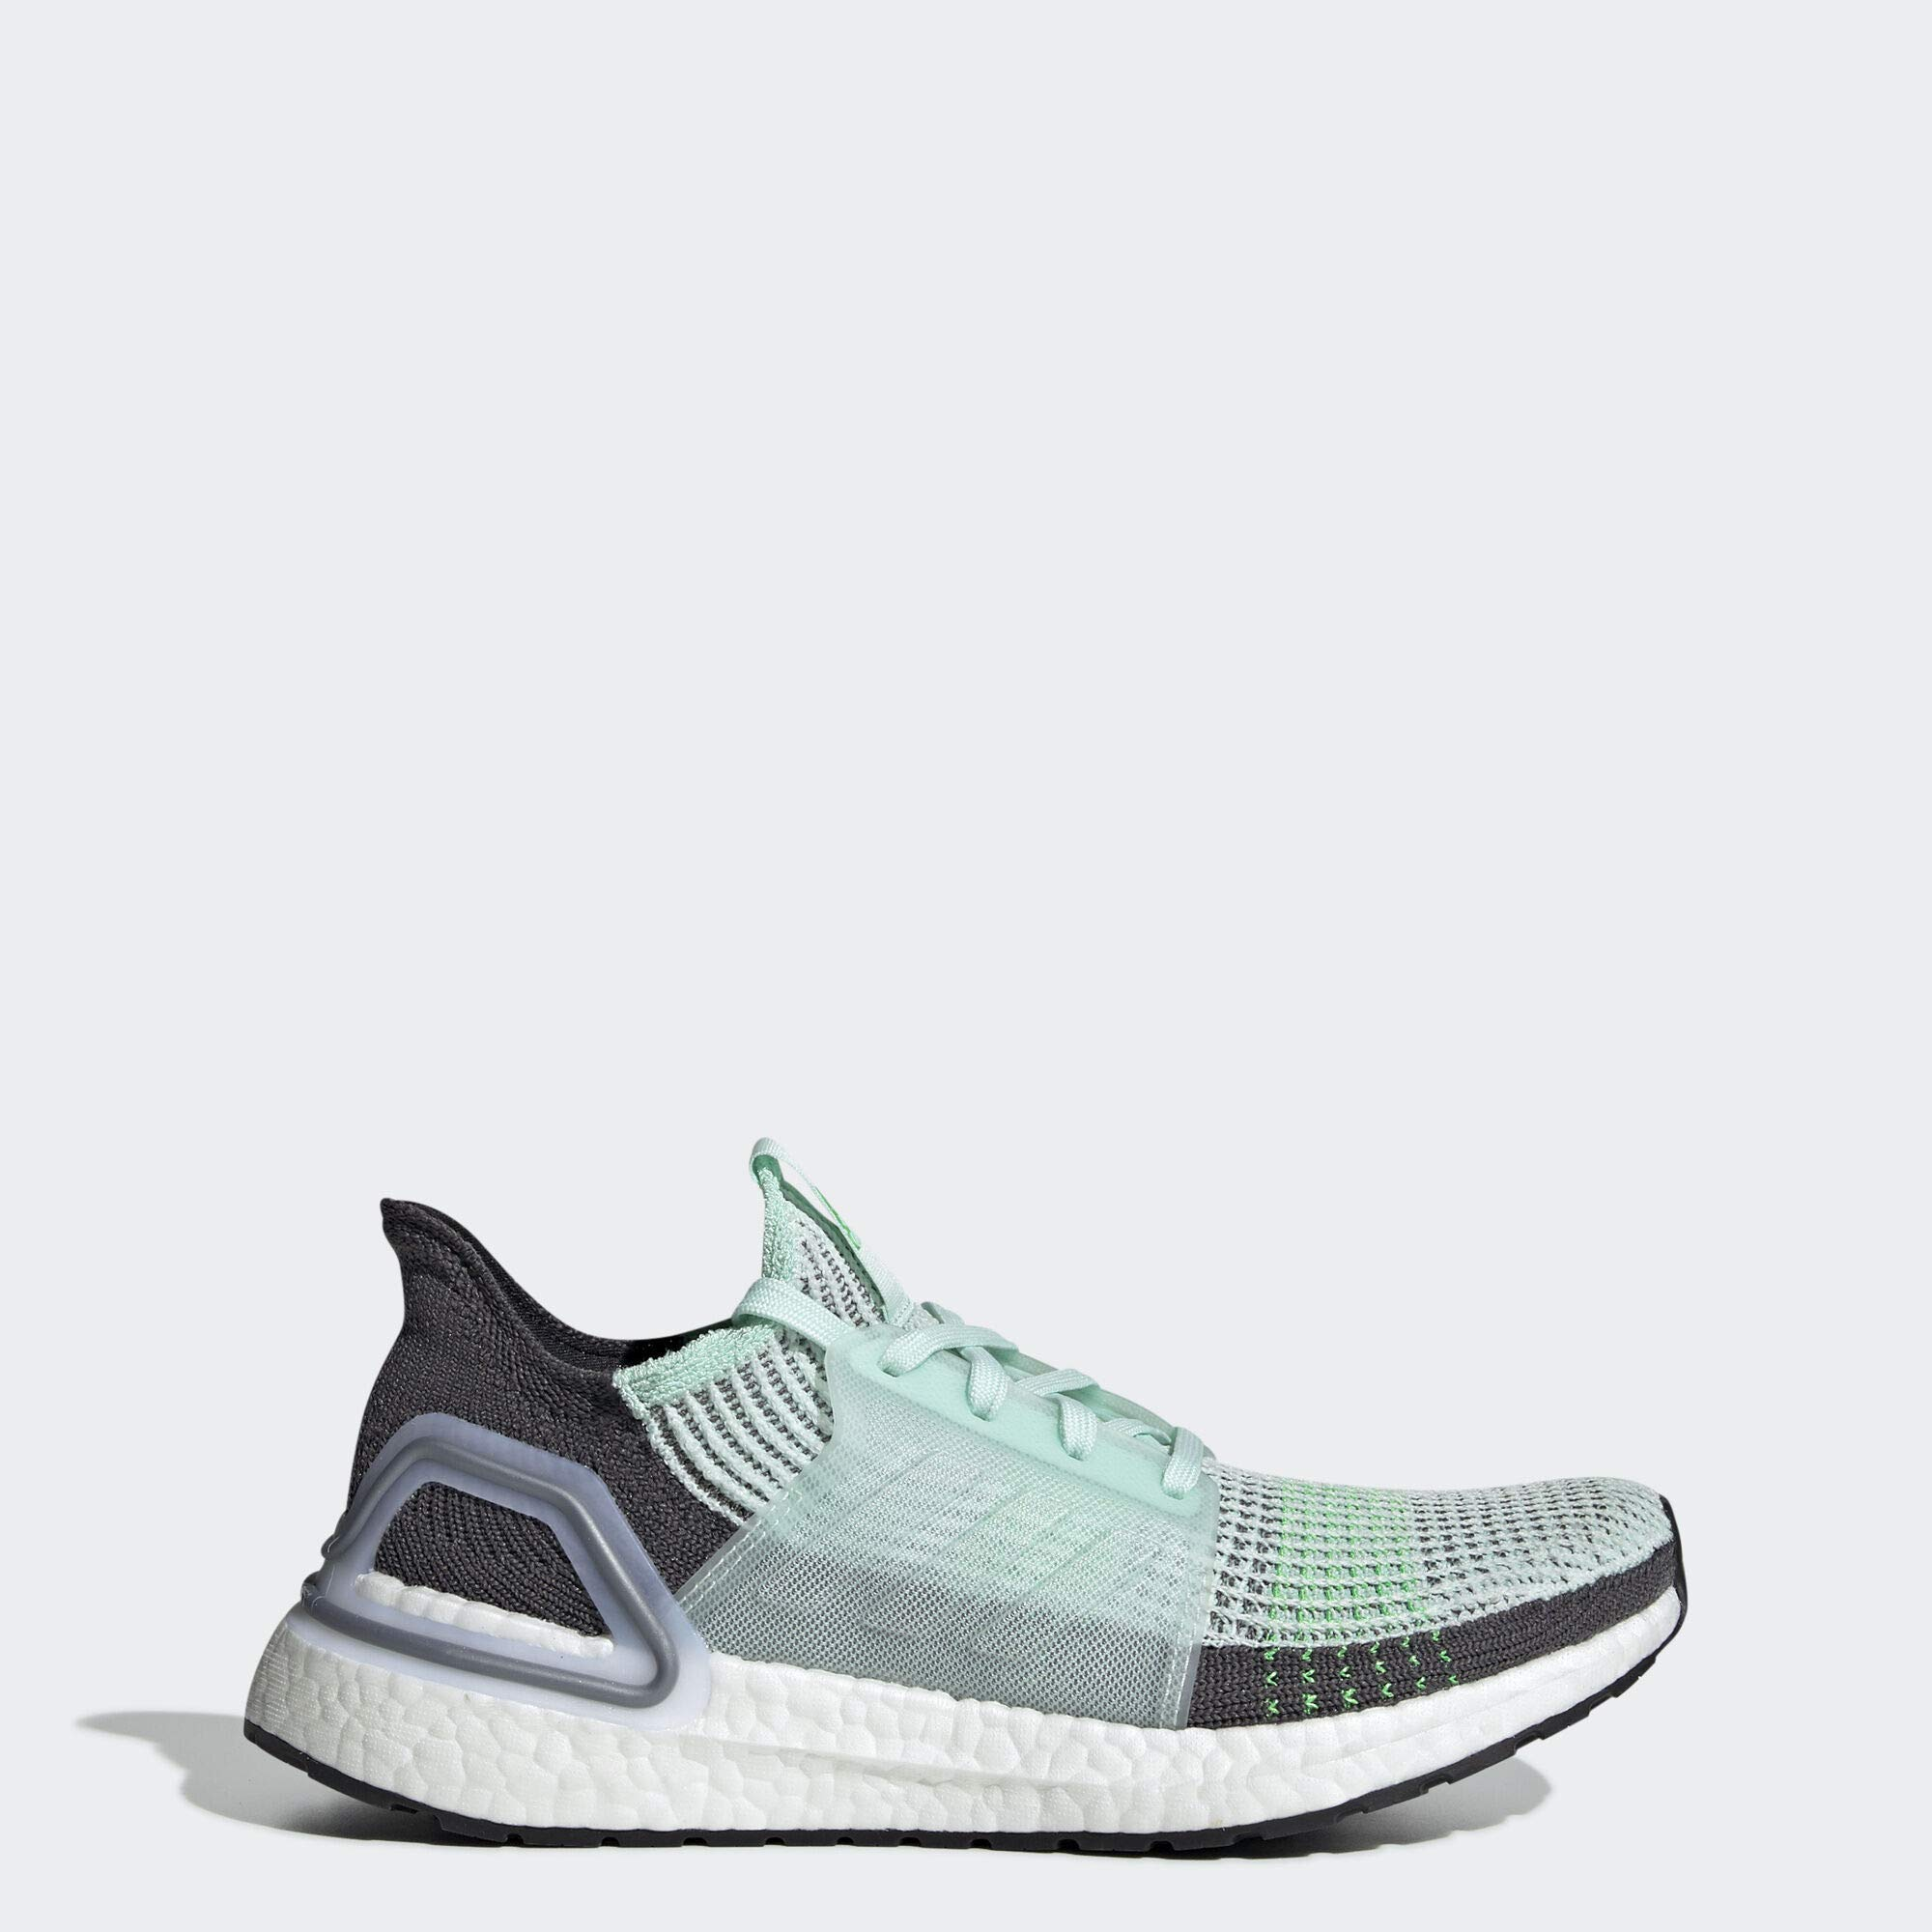 adidas Women's UltraBOOST 19, Ice Mint/Grey, 11.5 M US by adidas